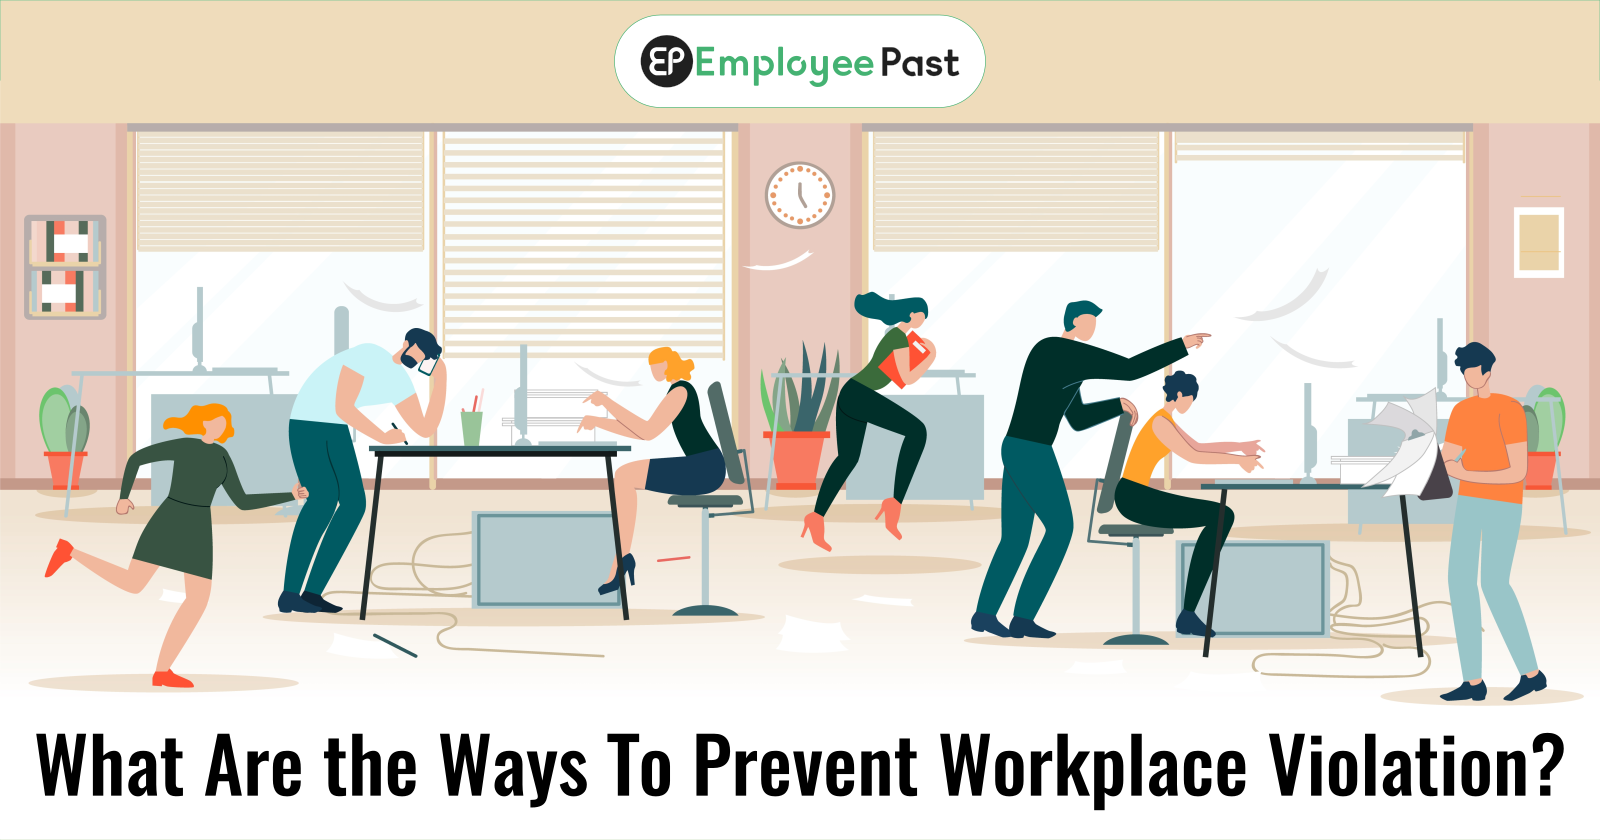 What Are the Ways To Prevent Workplace Violation?